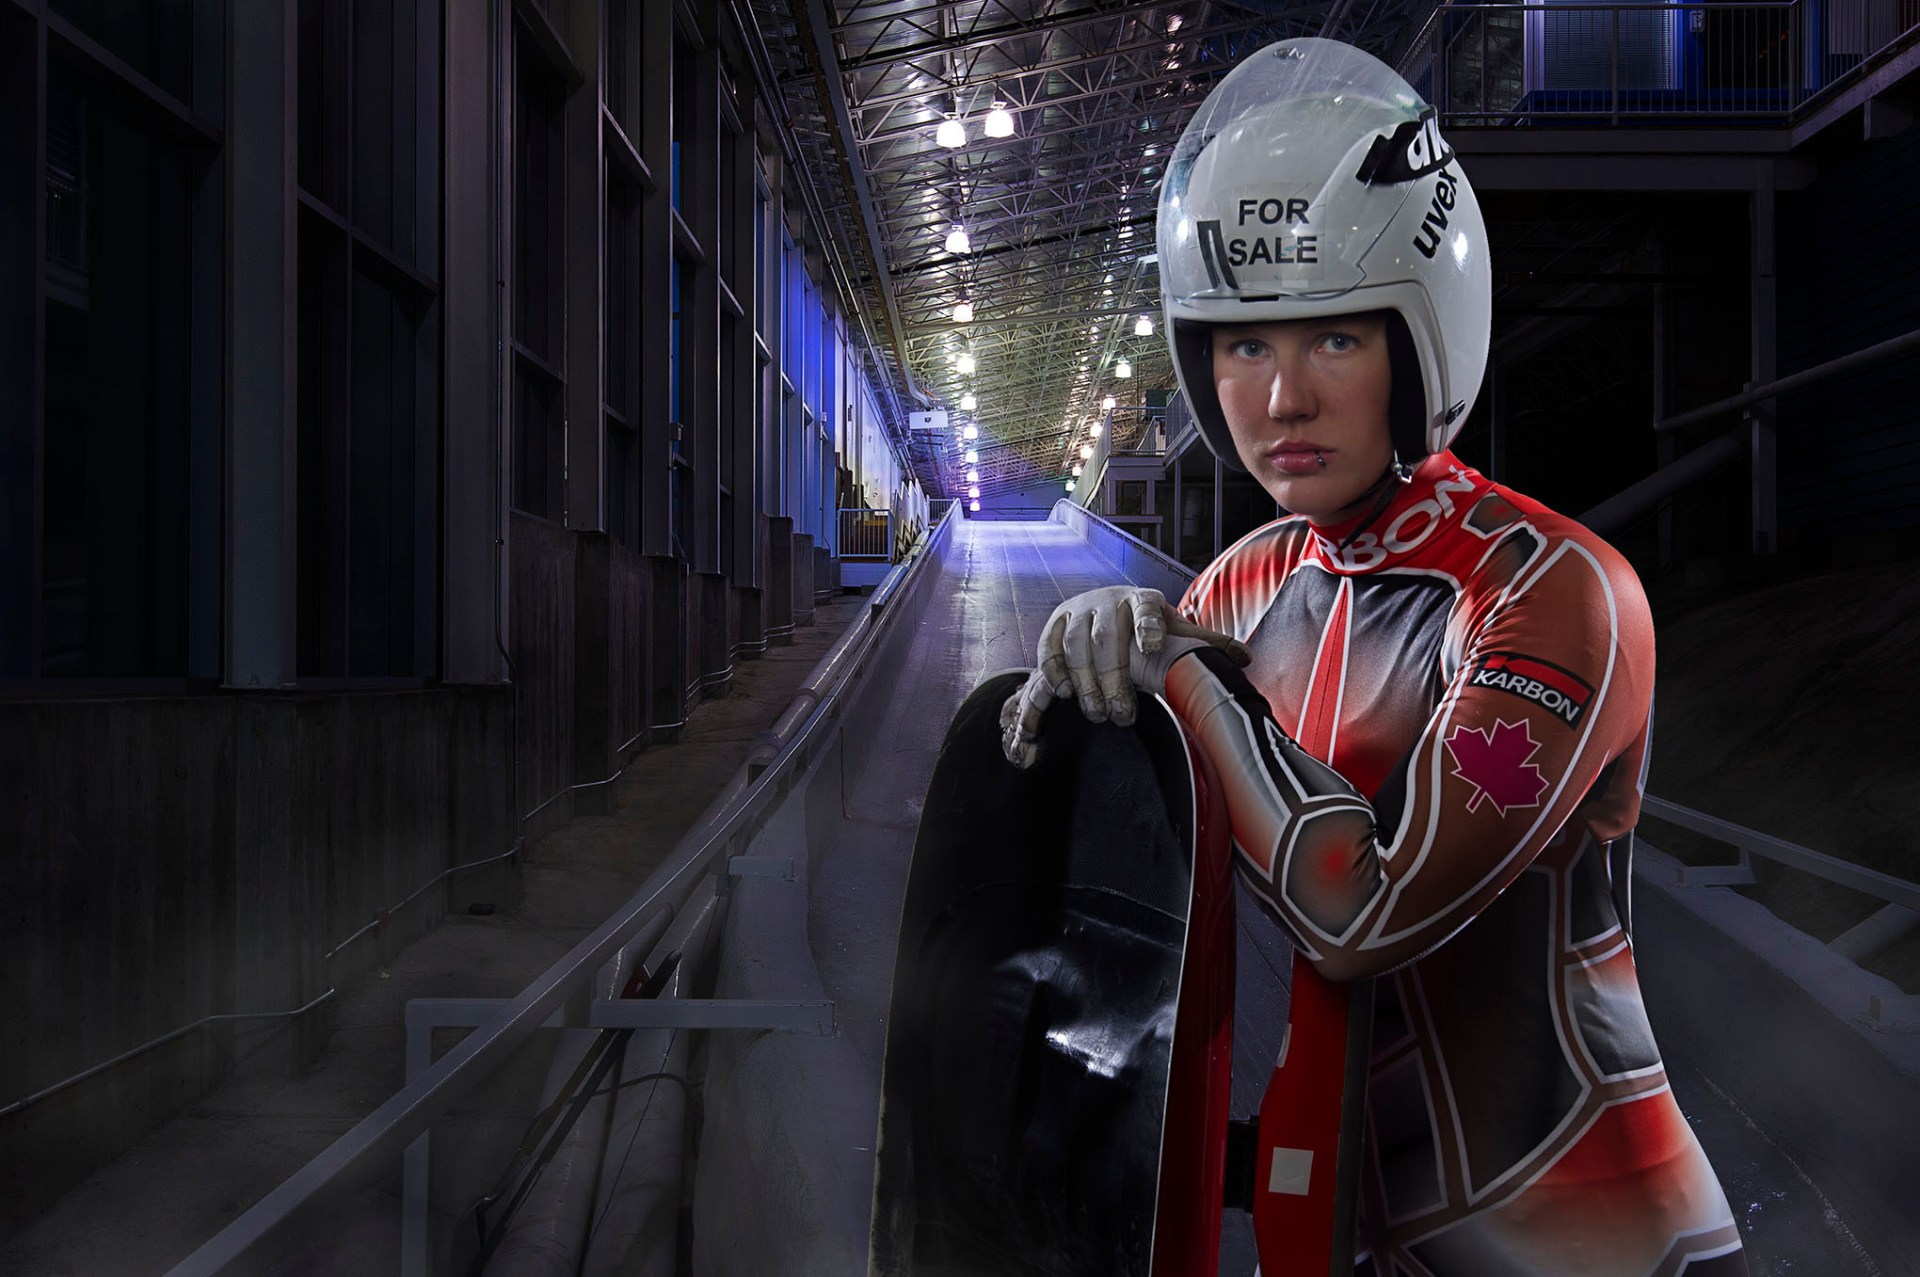 Portrait Case Study of Canadian Olympic Luge Athlete, Alex Gough